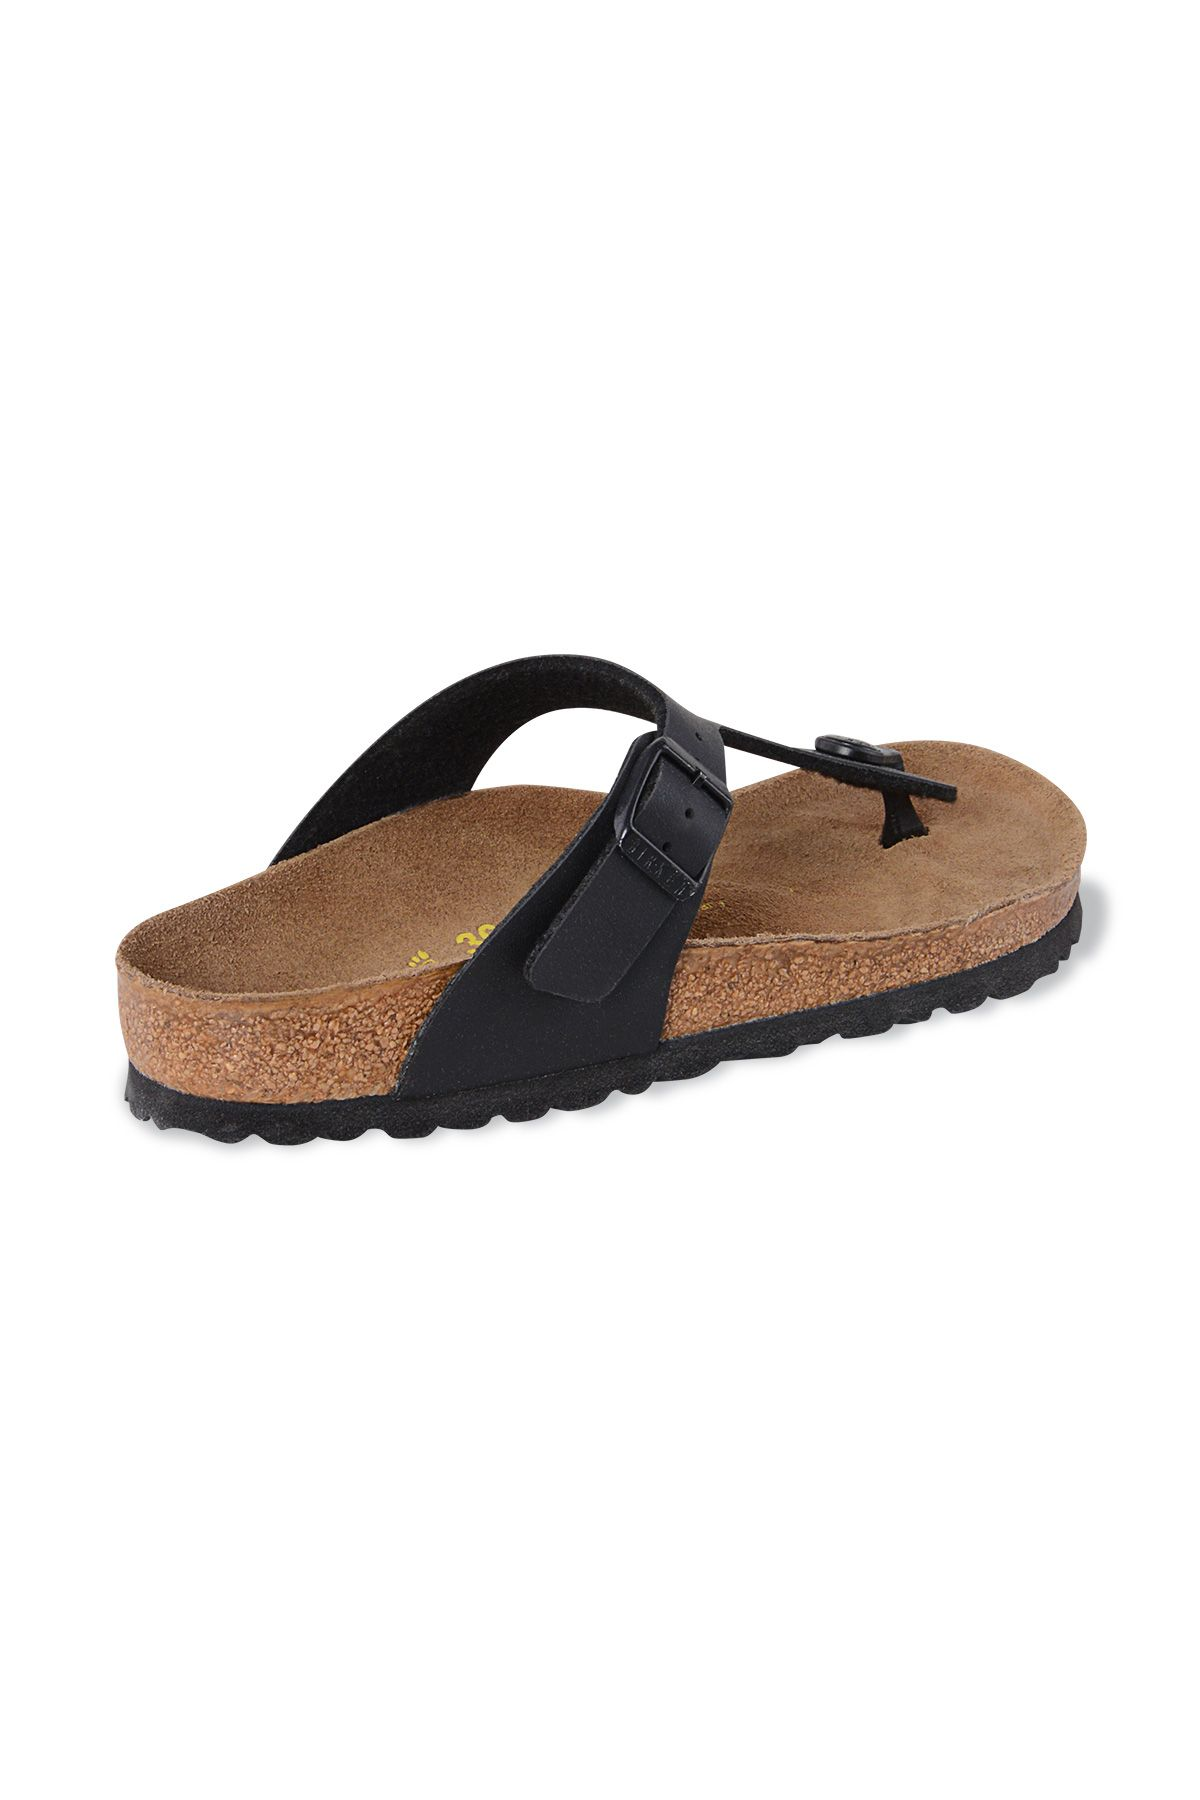 Birkenstock Gizeh BS Classic Women's Summer Slippers 0043691 Black